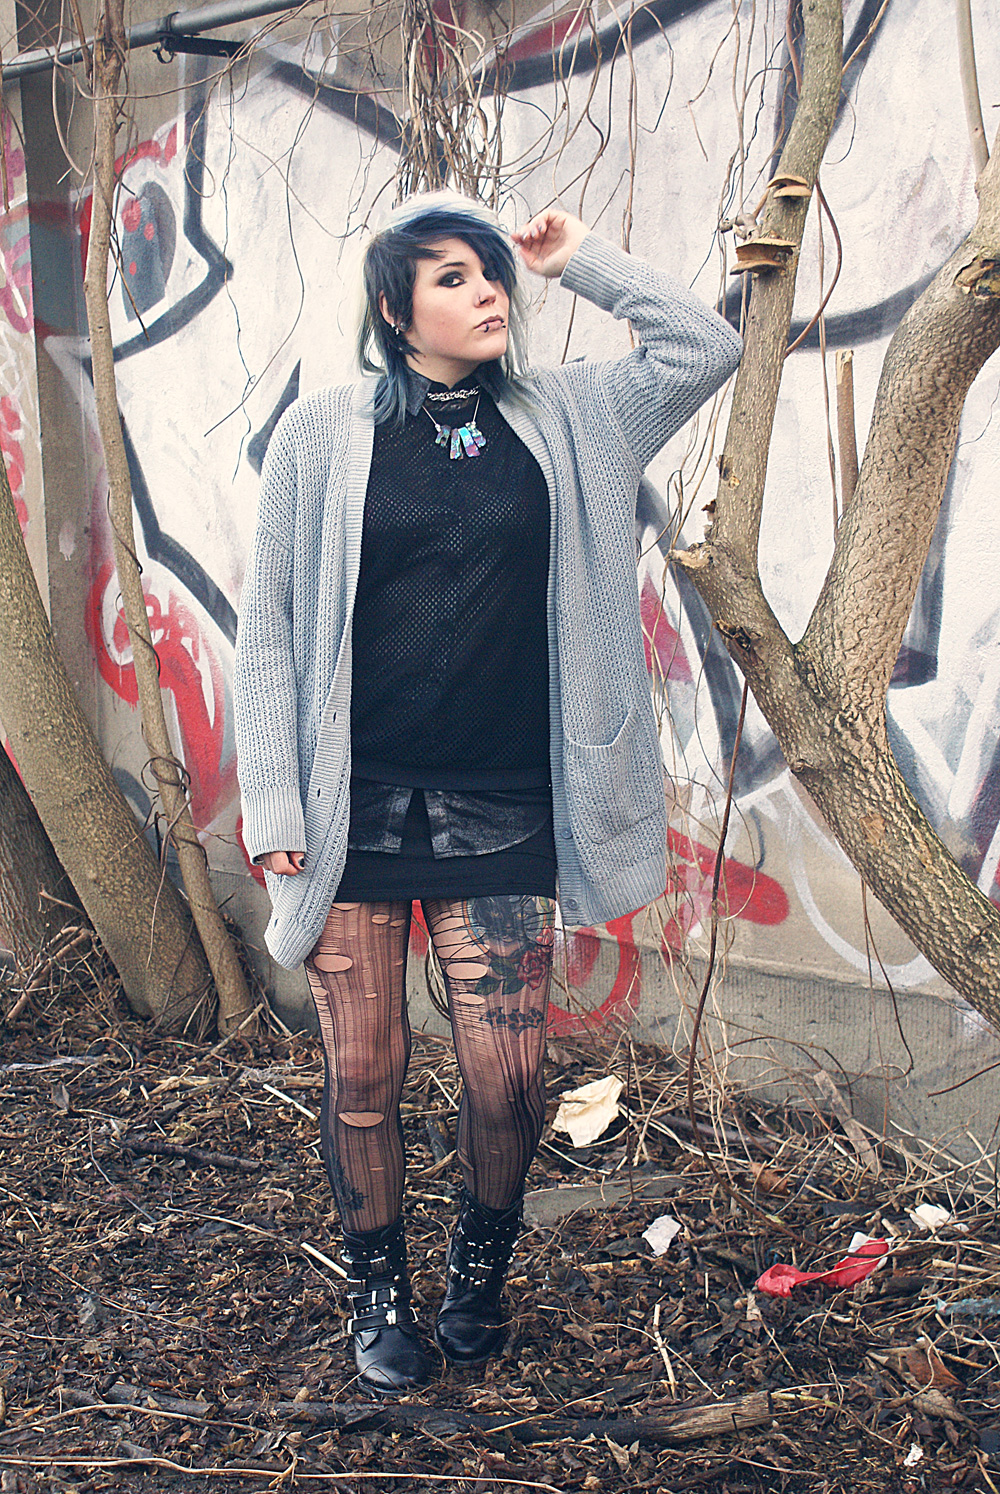 alternative altfashion outfit urban outfitters cardigan bdg netzpulli new yorker american apparel button up shirt dress tattoo cat katze strick knit punk goth gothic boots sacha street super shoes glitter shimmer metallic Cult of Youth